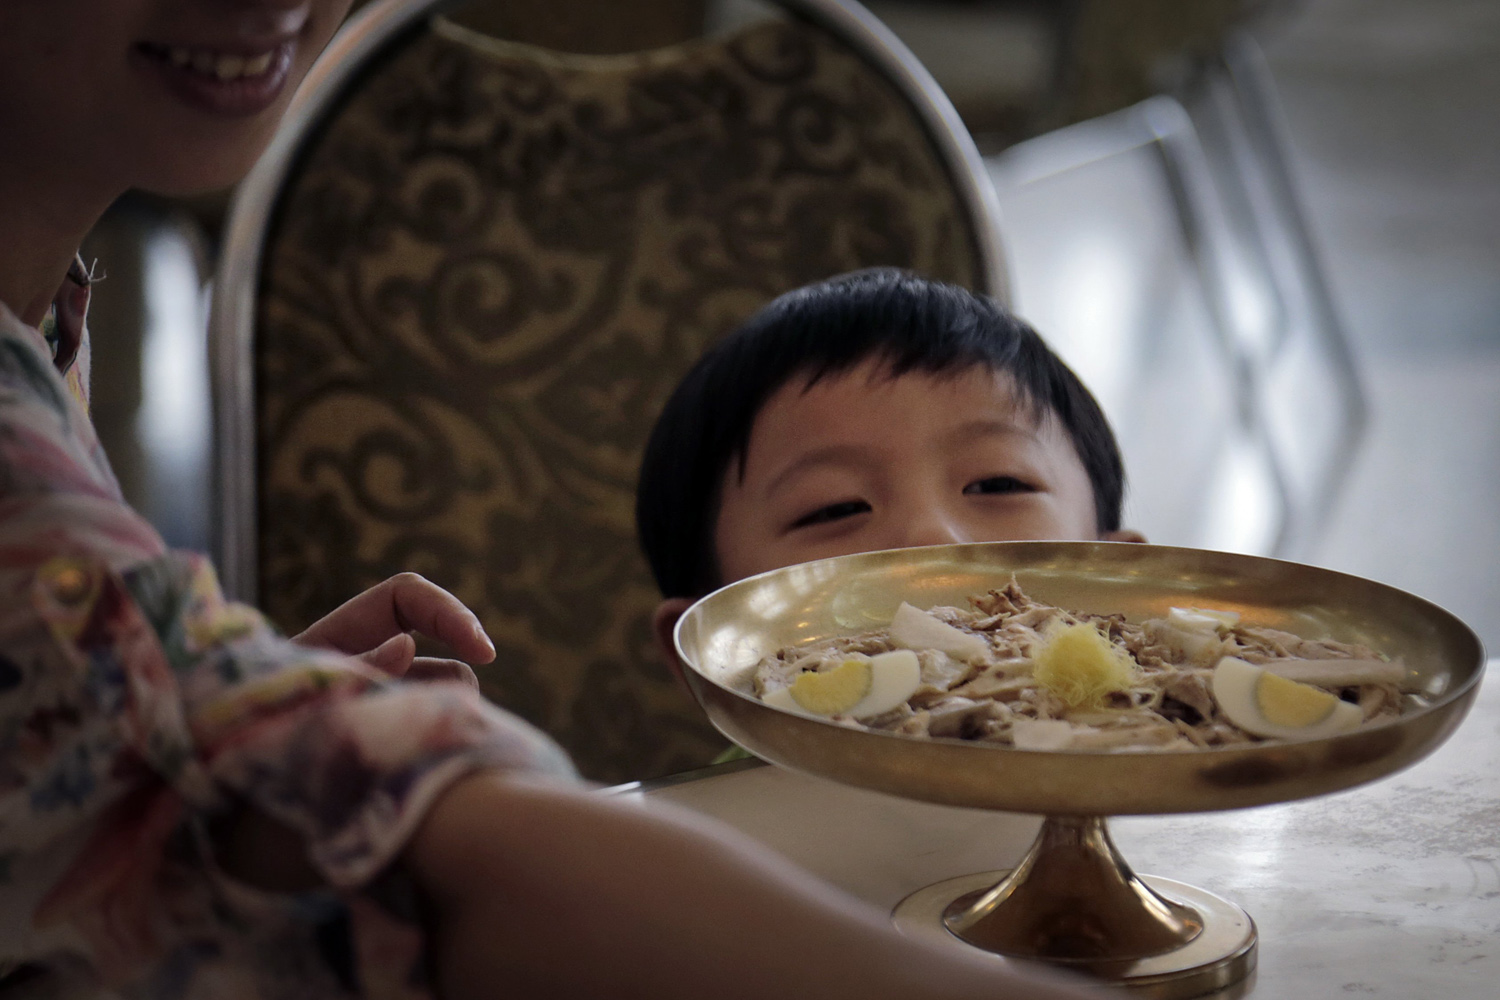 Sept. 1, 2014. A young North Korean boy peeps over his serving of noodles at the Ongnyugwan, a popular noodle restaurant in Pyongyang, North Korea. The restaurant, built in 1960 at the instructions of the late leader Kim Il Sung, claims to serve 10,000 lunches a day.